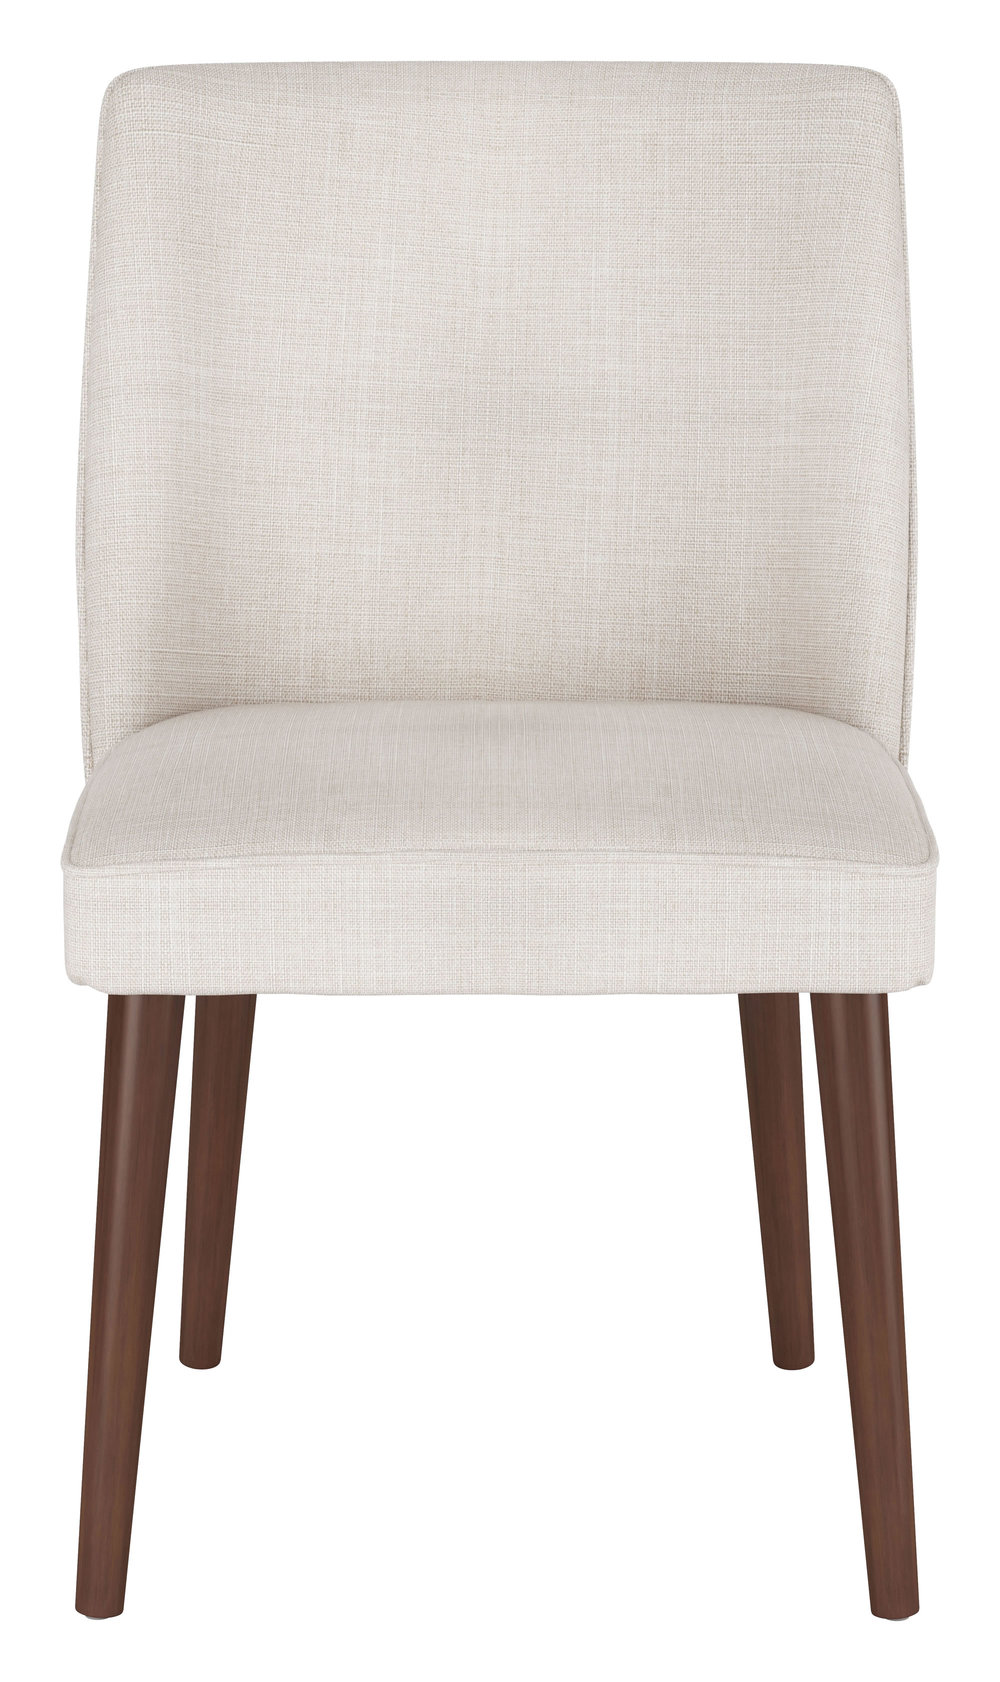 ZUO MODERN CONTEMPORARY, INC - Kennedy Dining Chair - Set of 2 - Beige